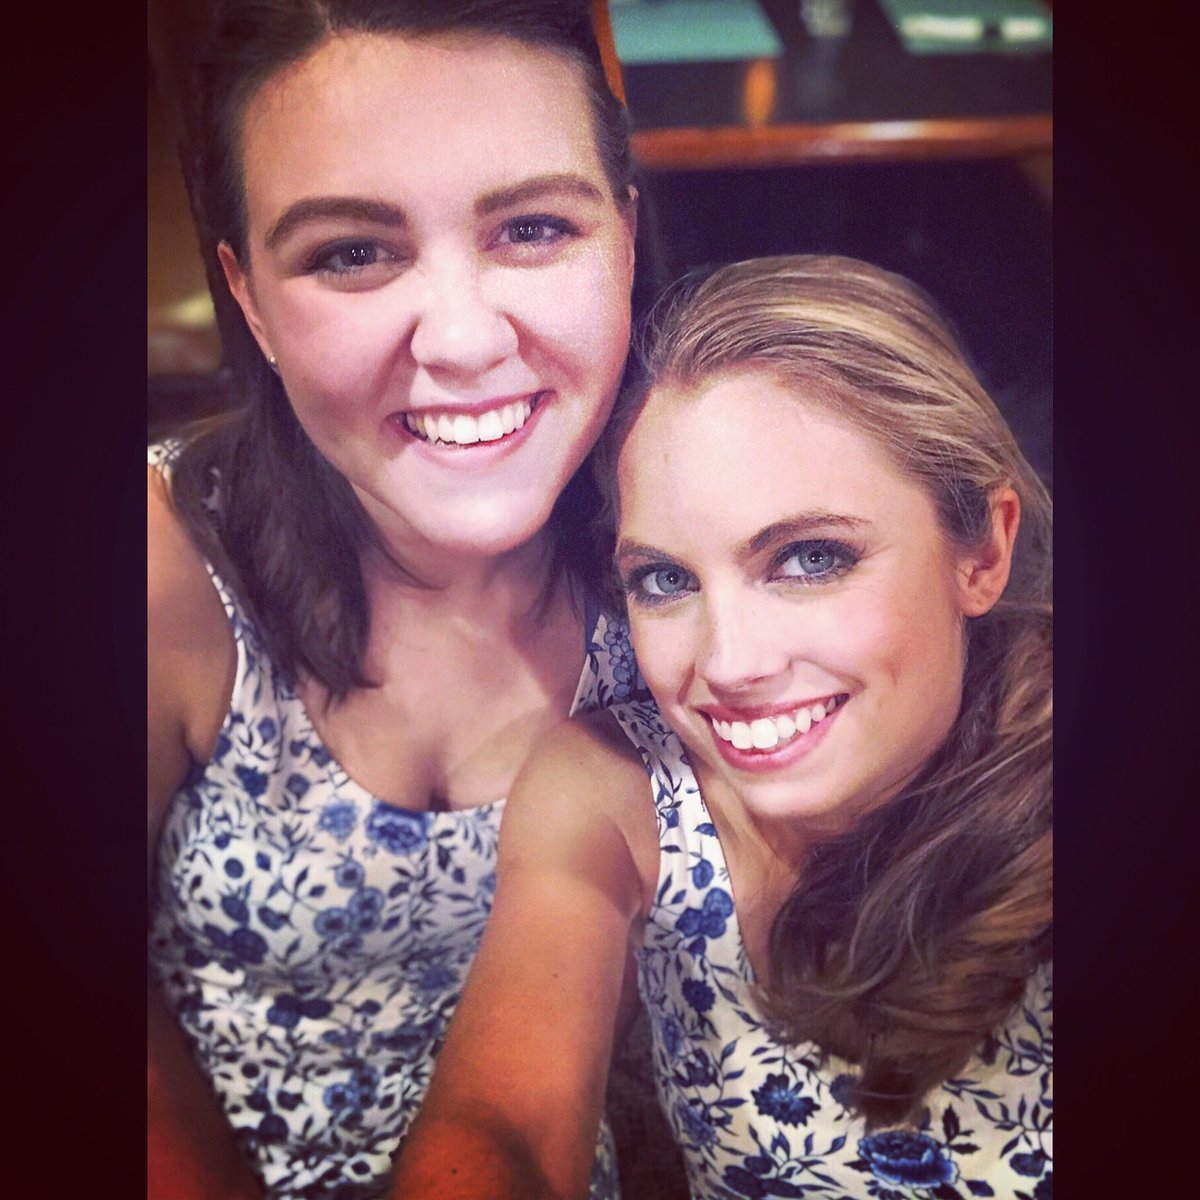 """""""Emily"""" and Emily post show twinning! #OurTown #ActorLife  <br>http://pic.twitter.com/kw9LLb6FpV"""